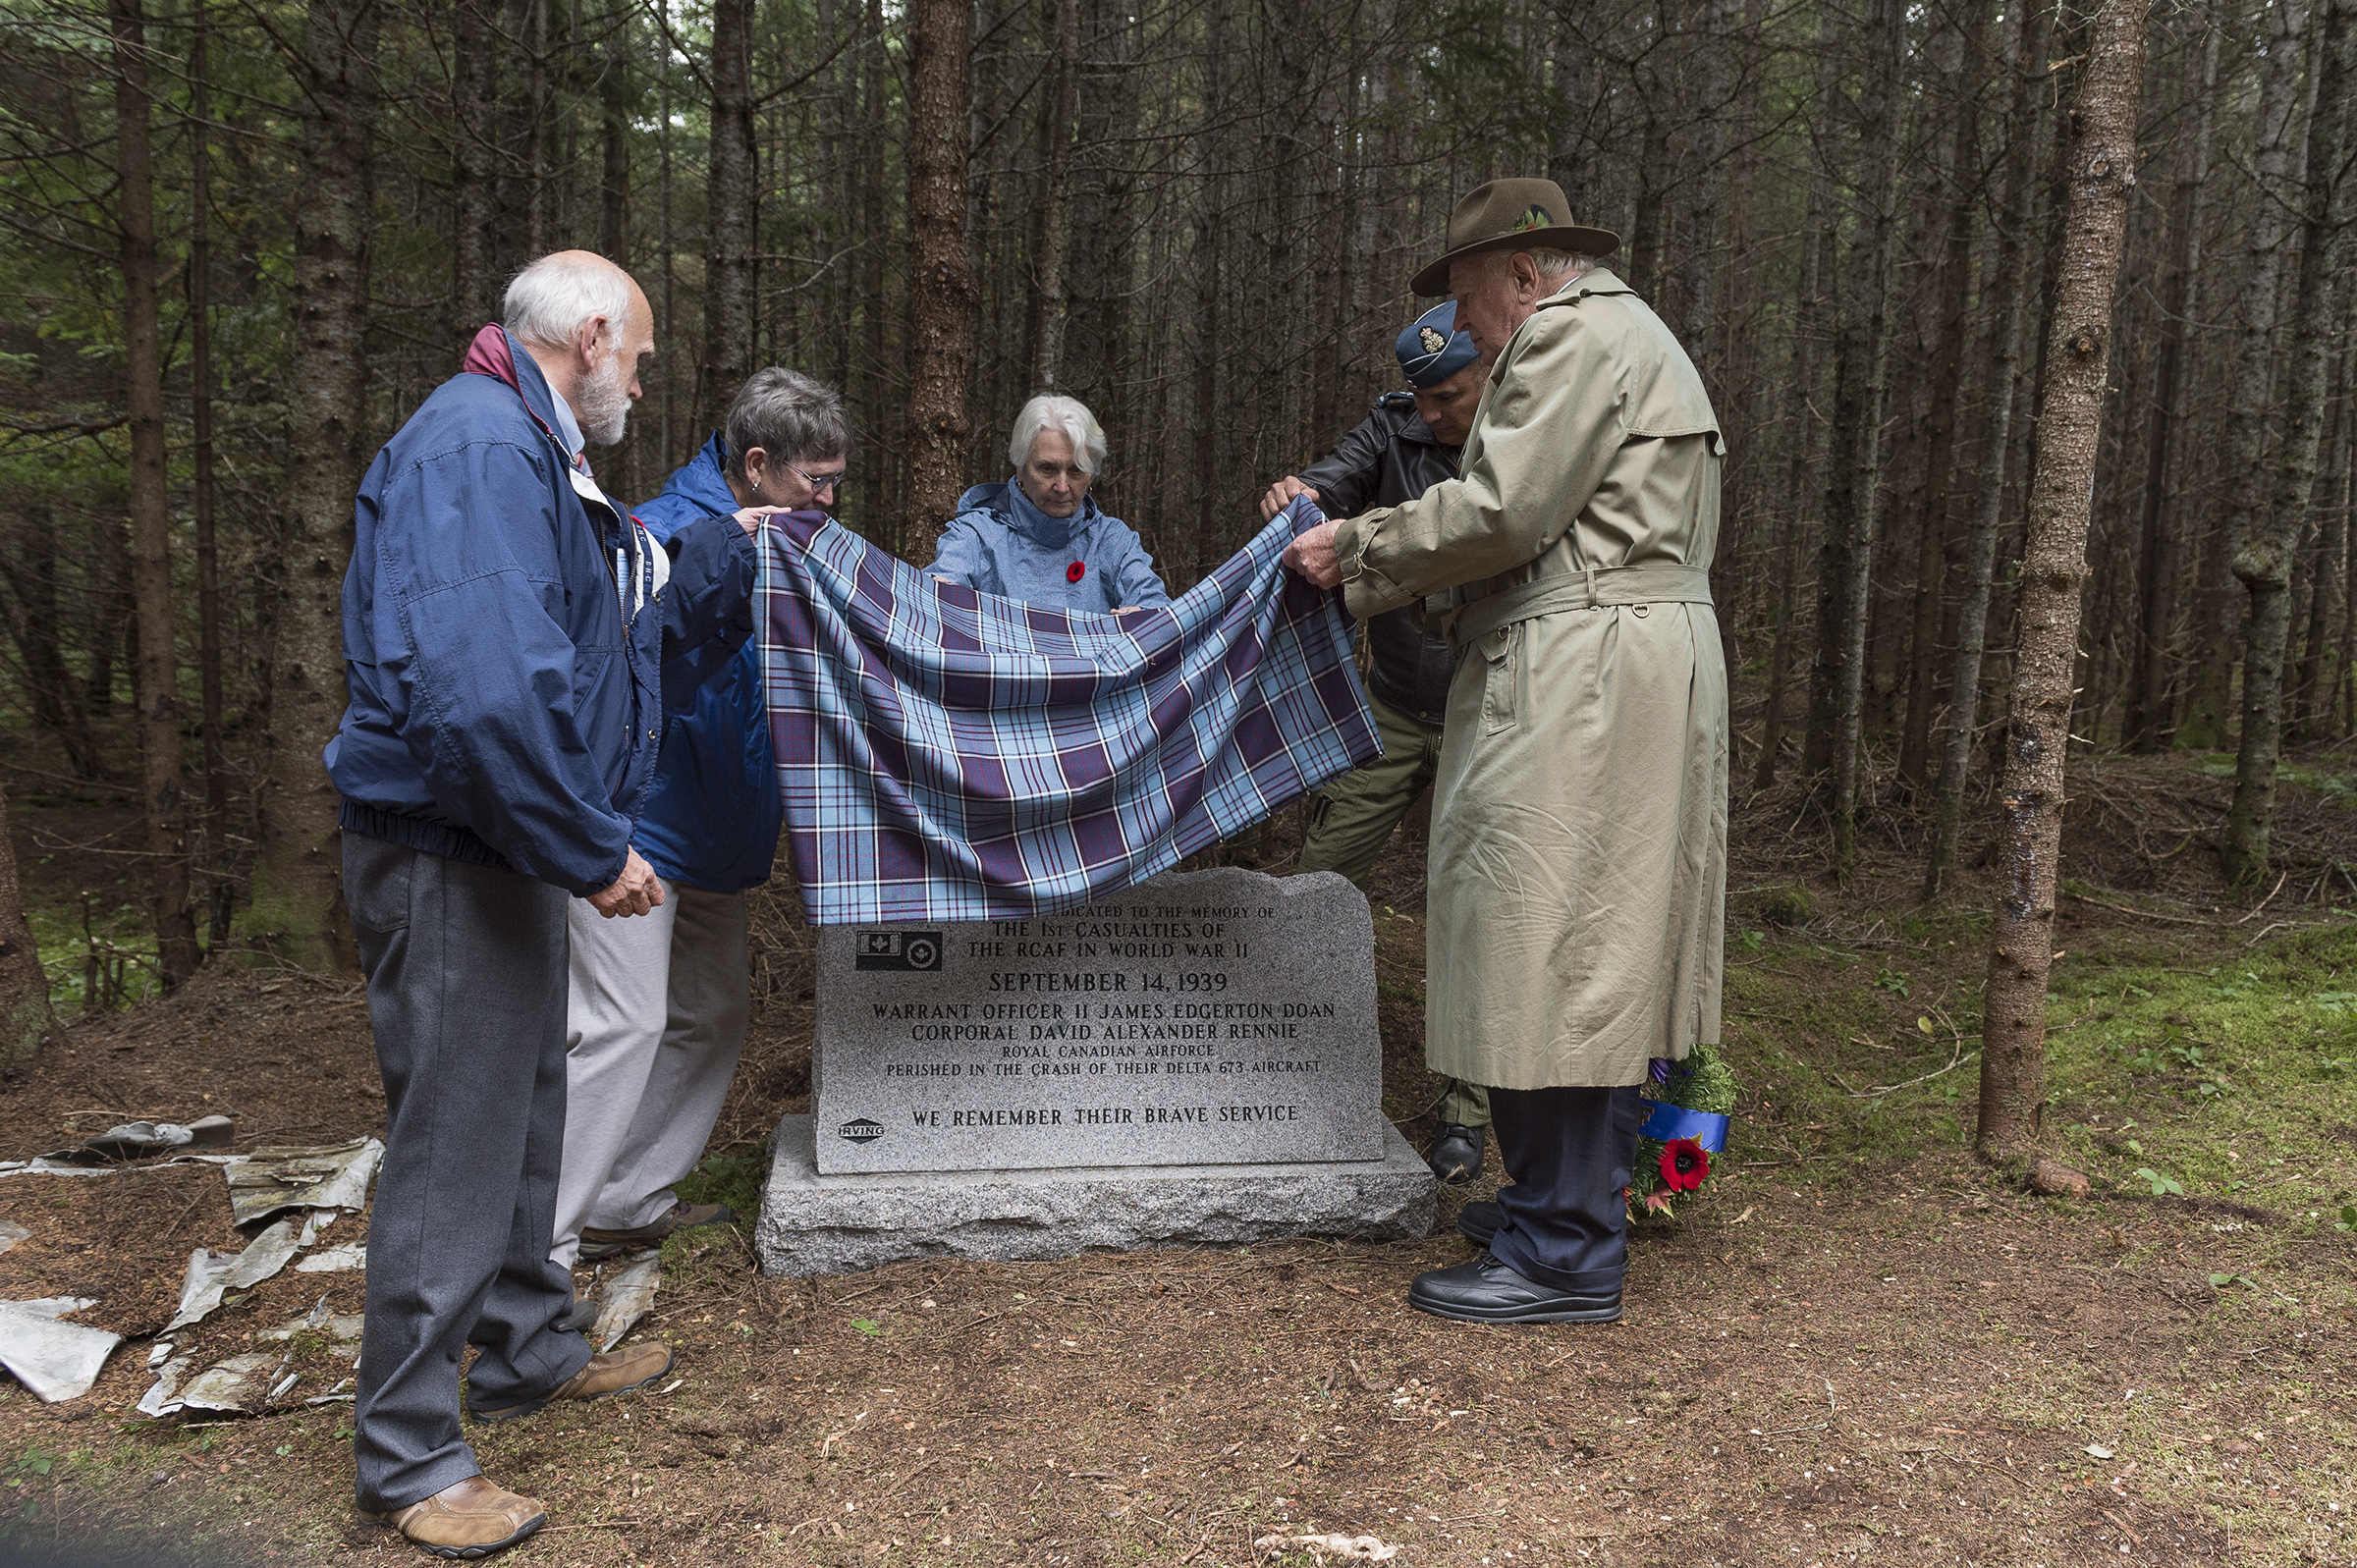 On September 14, 2019, (from left) Walter Bateson, Lynda Diepold, Shirley Routliffe, Major-General Blaise Frawley and Mr. J.K. Irving unveil the monument commemorating Warrant Officer Class 2 James Edward Doan and Corporal David Alexander Rennie who died on September 14, 1939, when their Northrop Delta aircraft crashed near Plaster Rock, New Brunswick. PHOTO: Corporal Nicolas Alonso, GN02-2019-0949-018